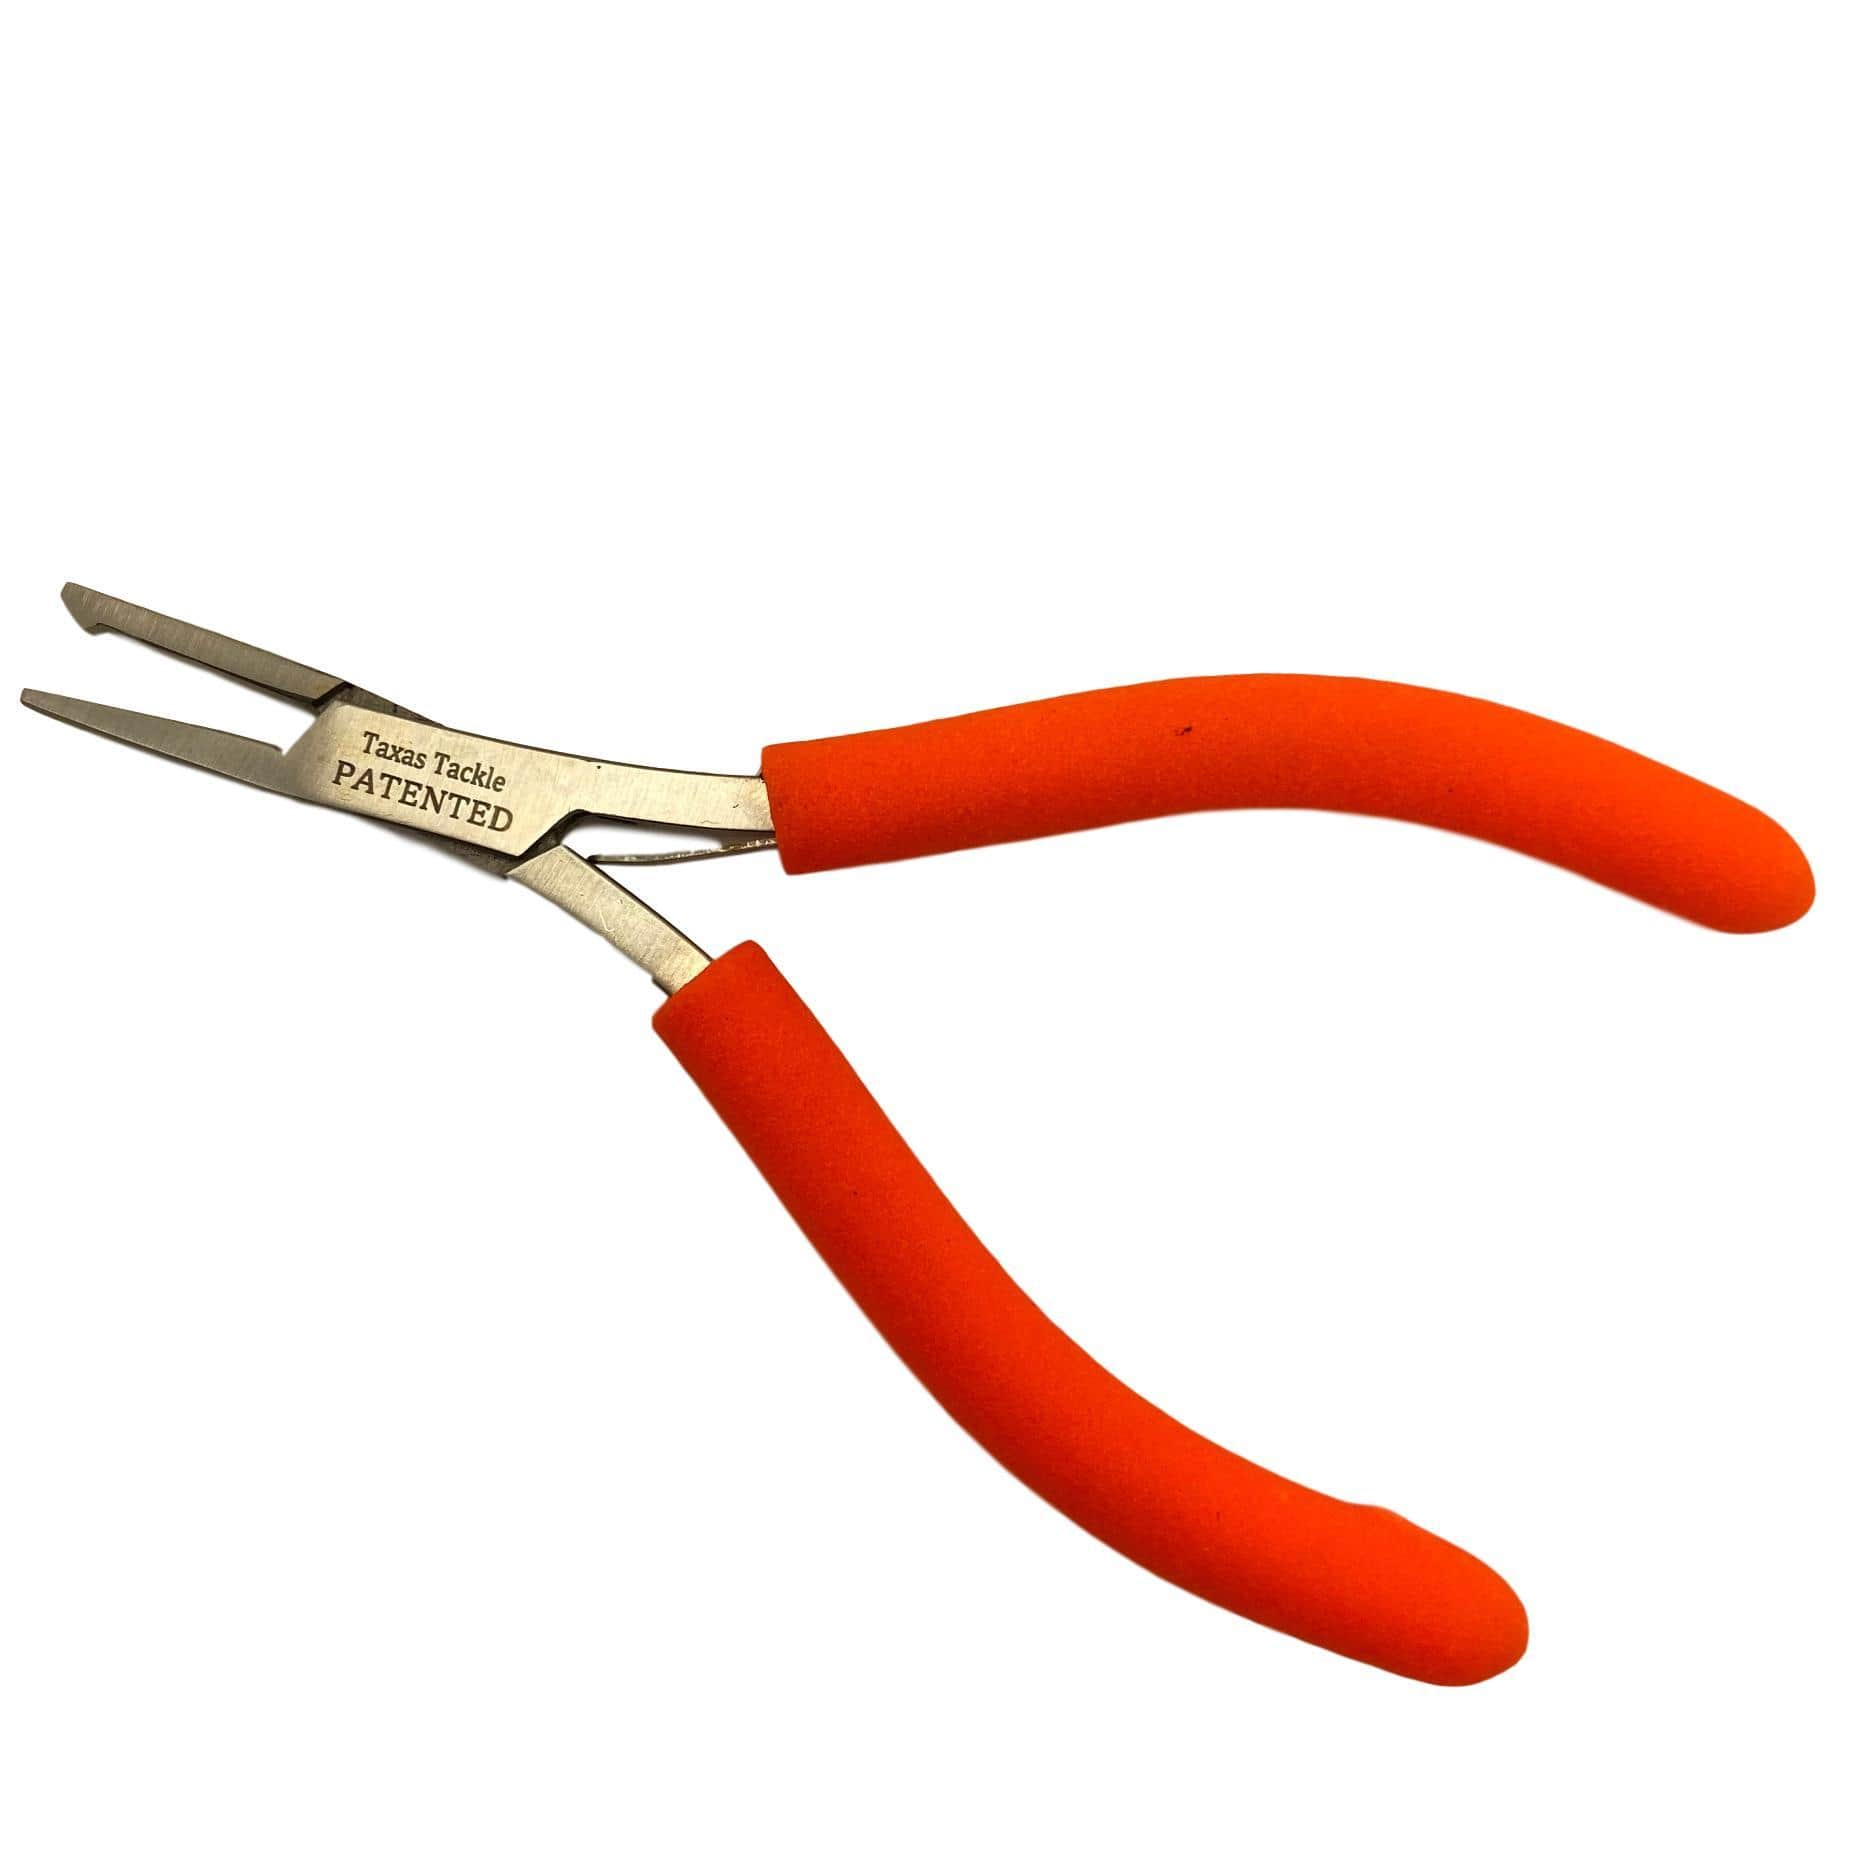 Texas Tackle Split-Ring Pryers/Pliers